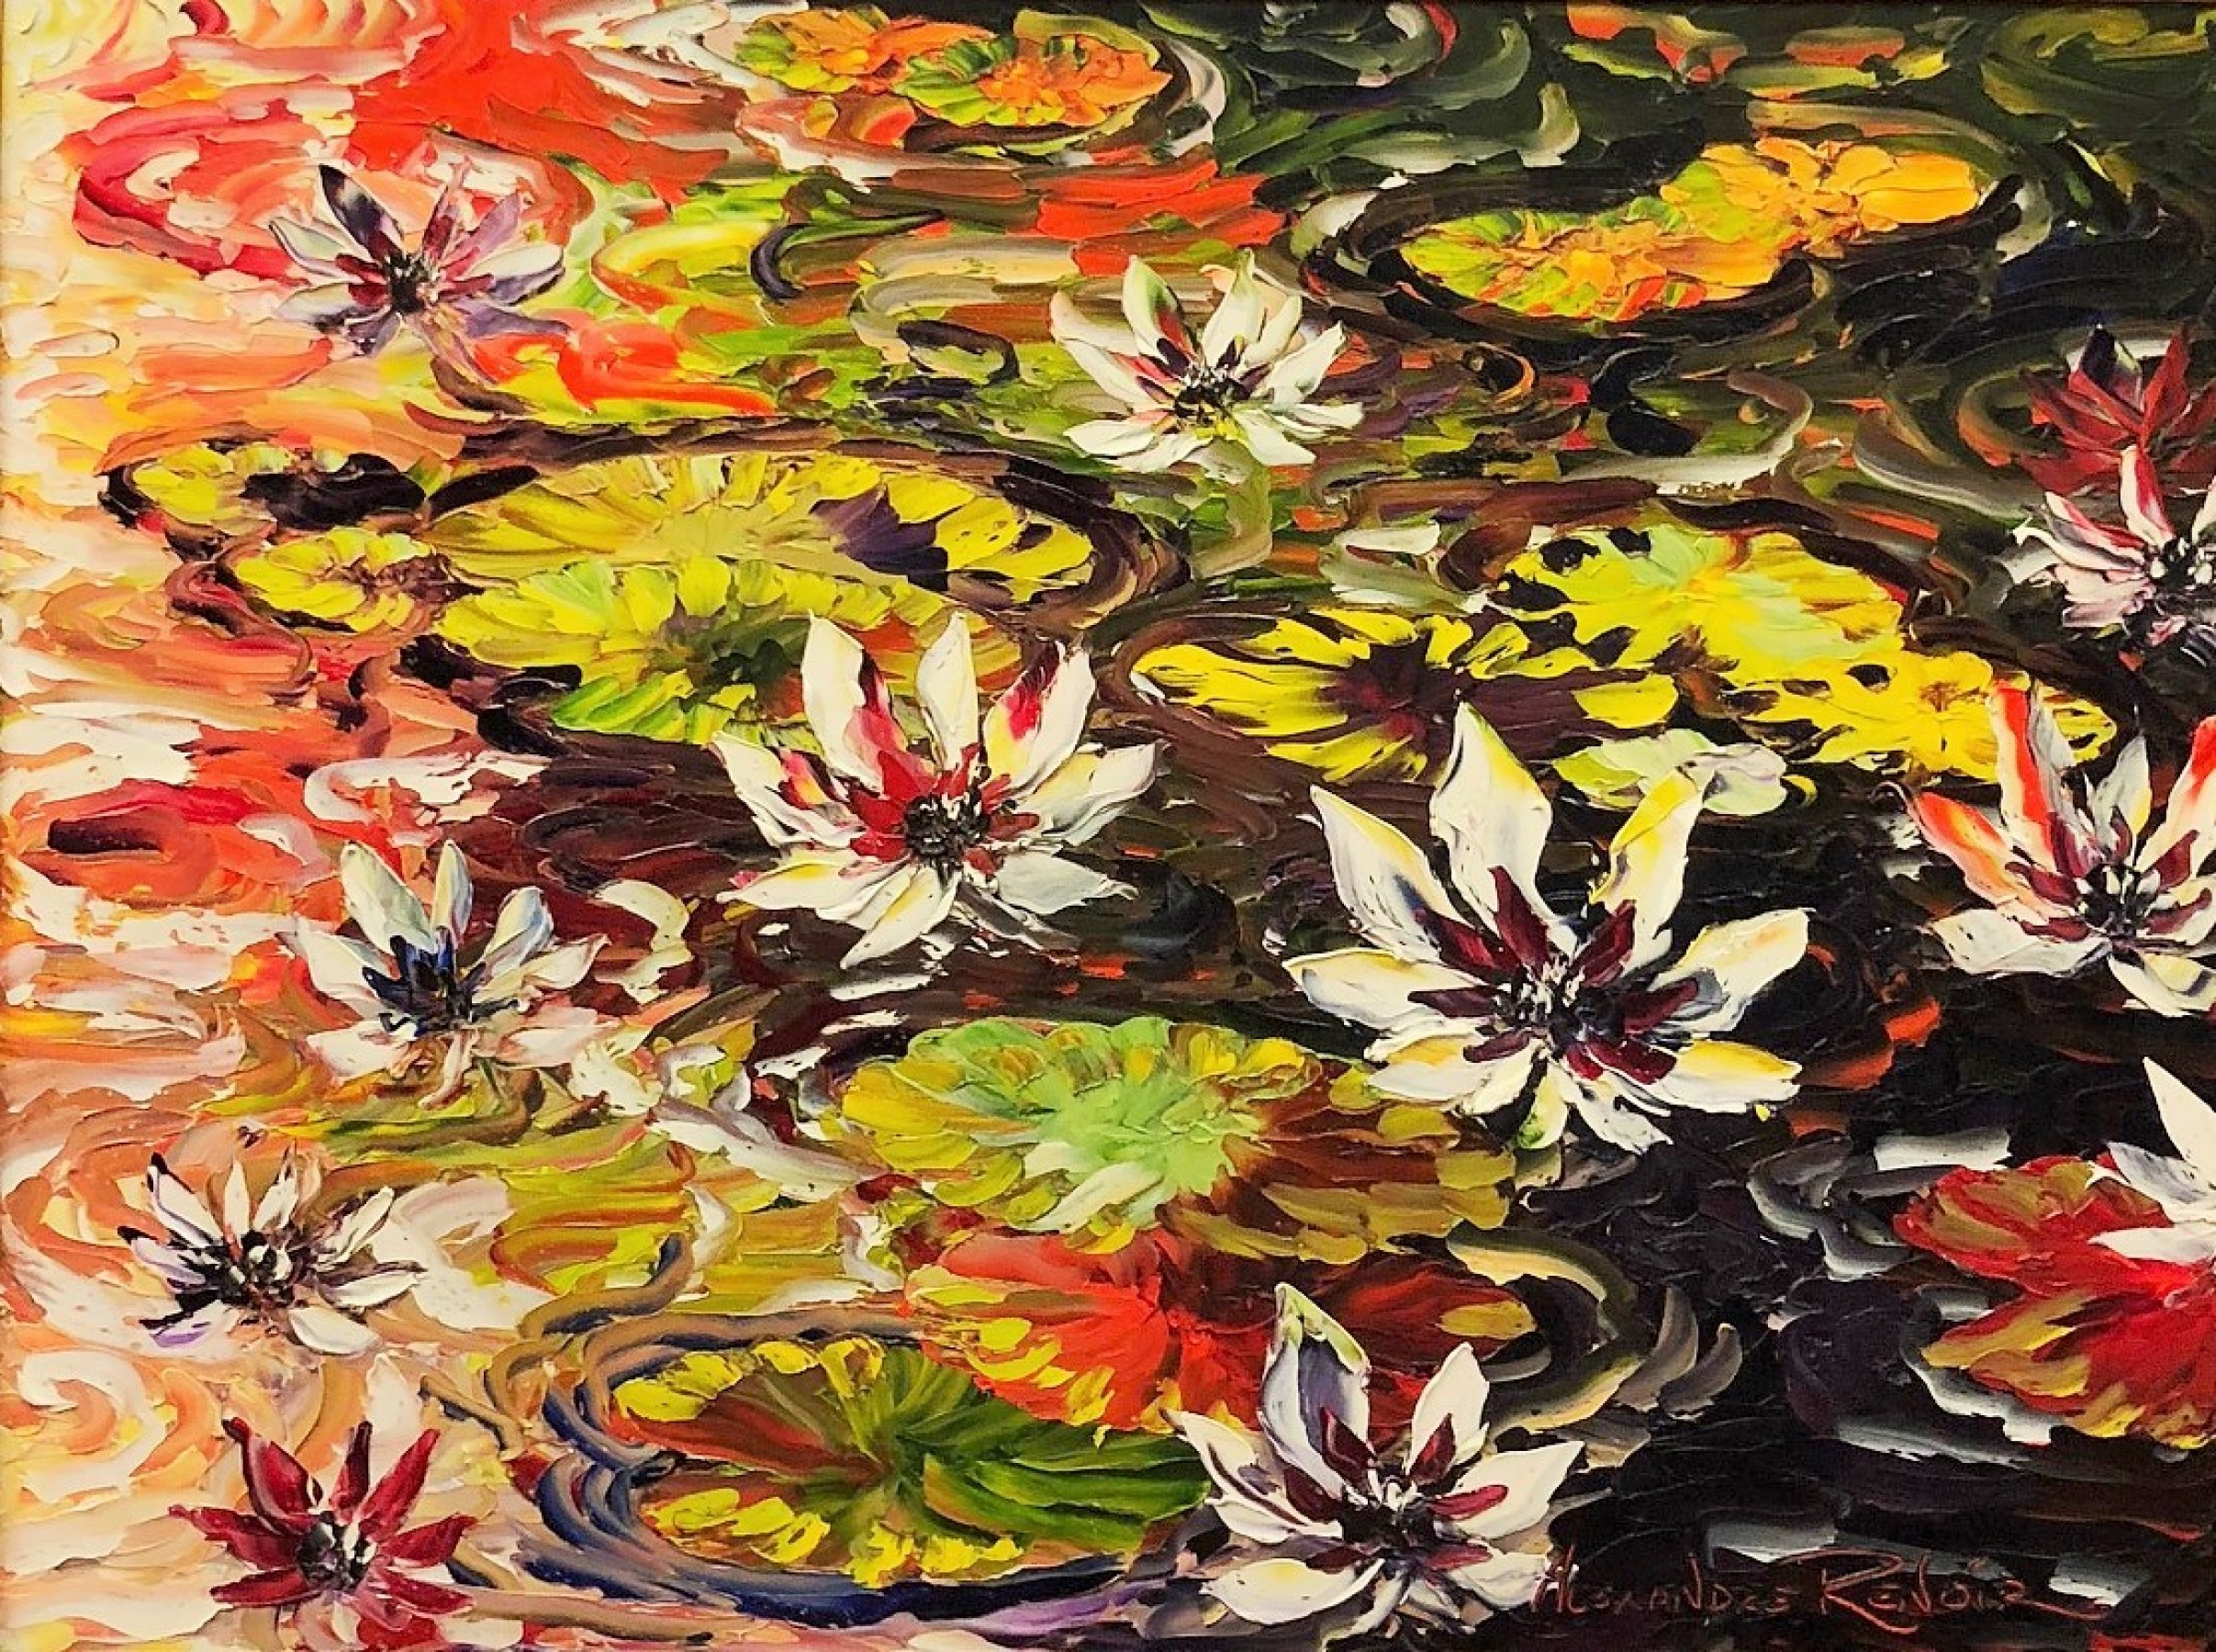 Waterlilies 2010 39x49